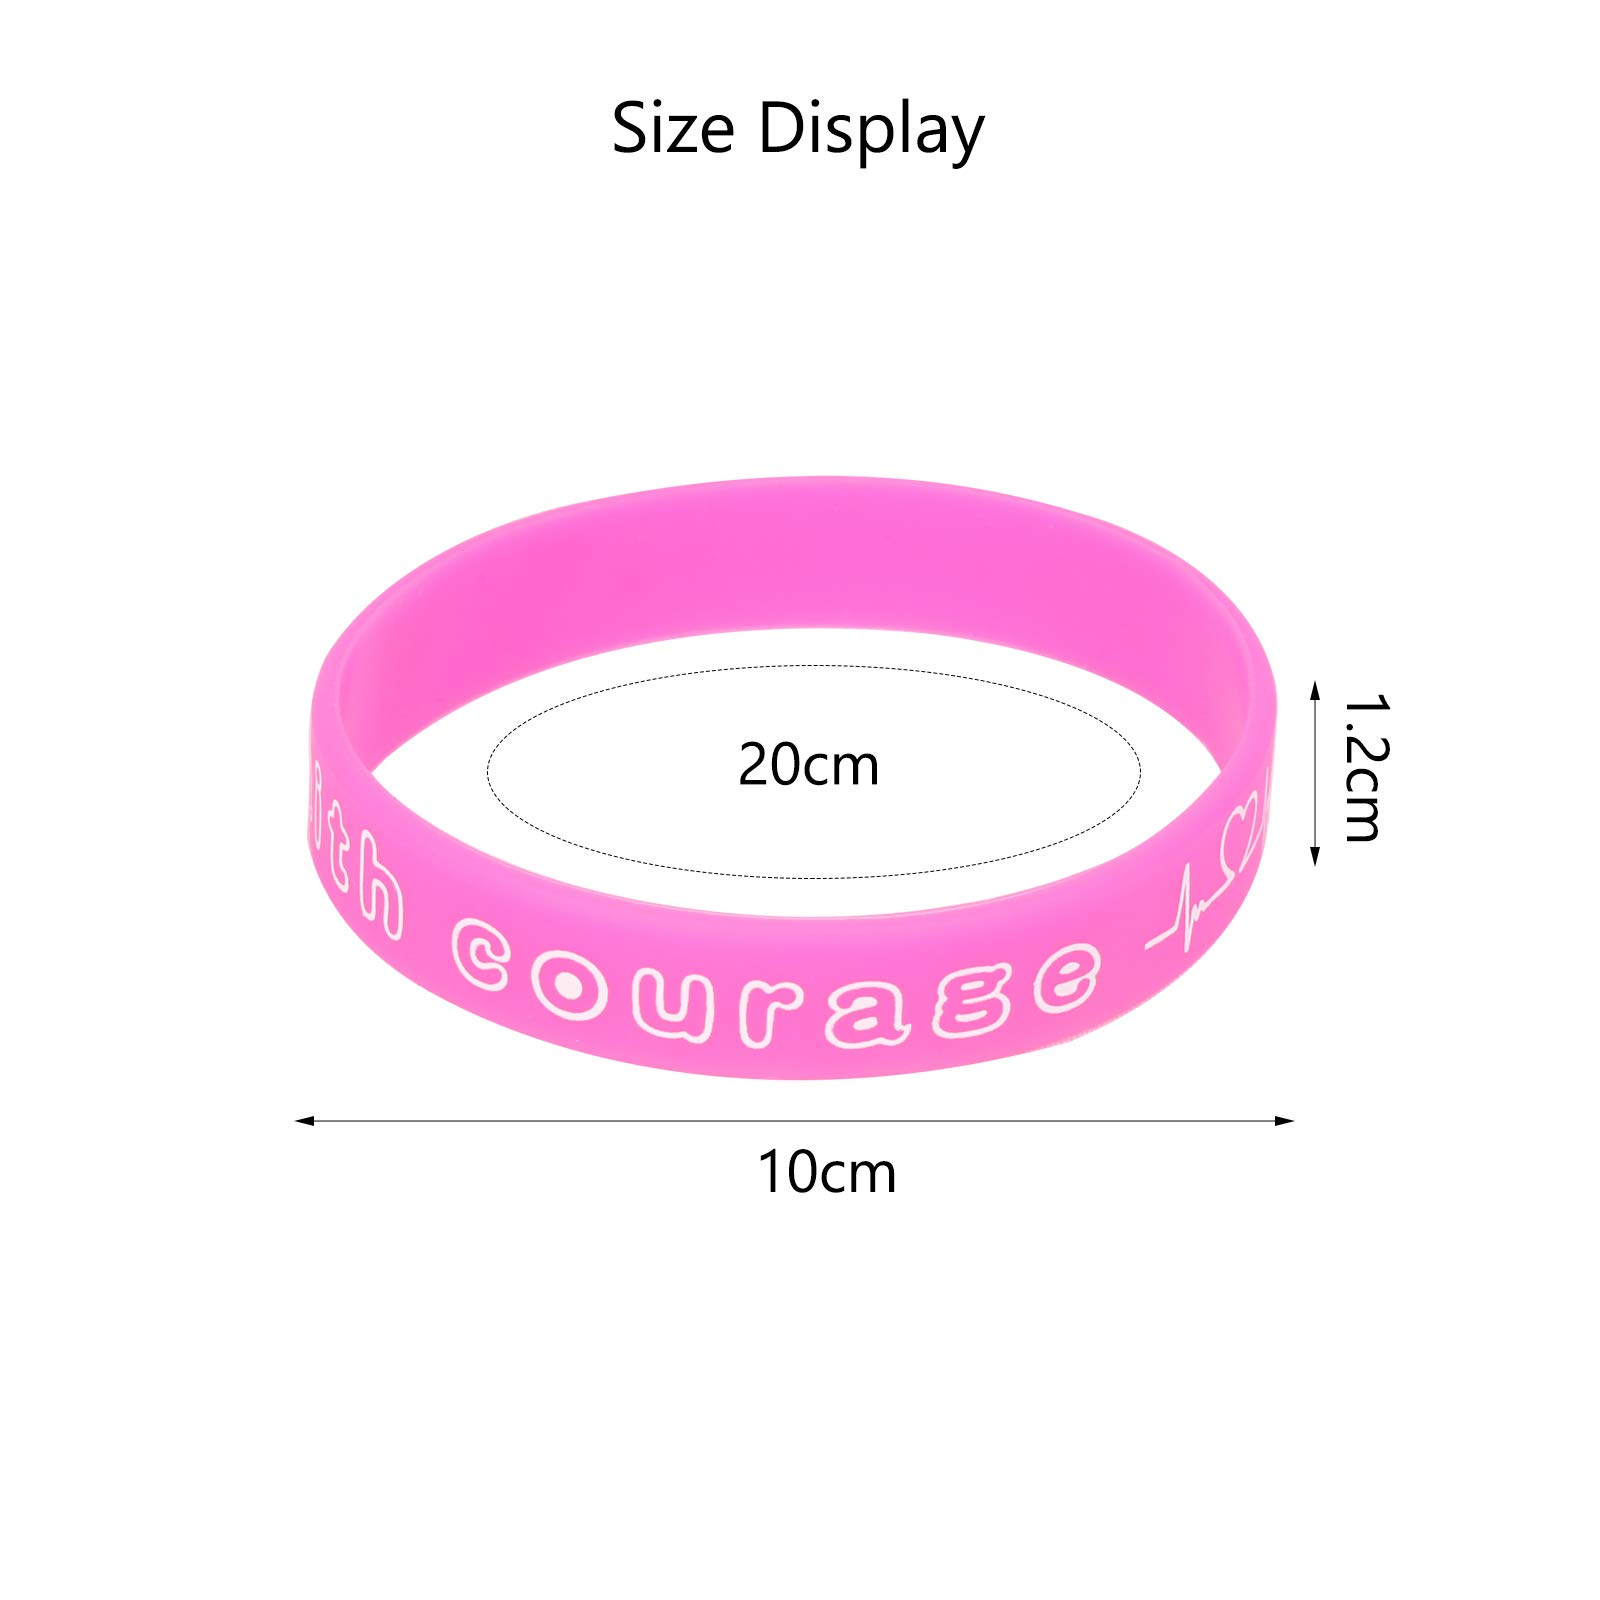 Matogle 36pcs Rubber Wristbands Rubber Band Bracelets for Valentine\'s Day Party Supplies Gift School Rewards Couples Adult Teenager Kids Pink Red White